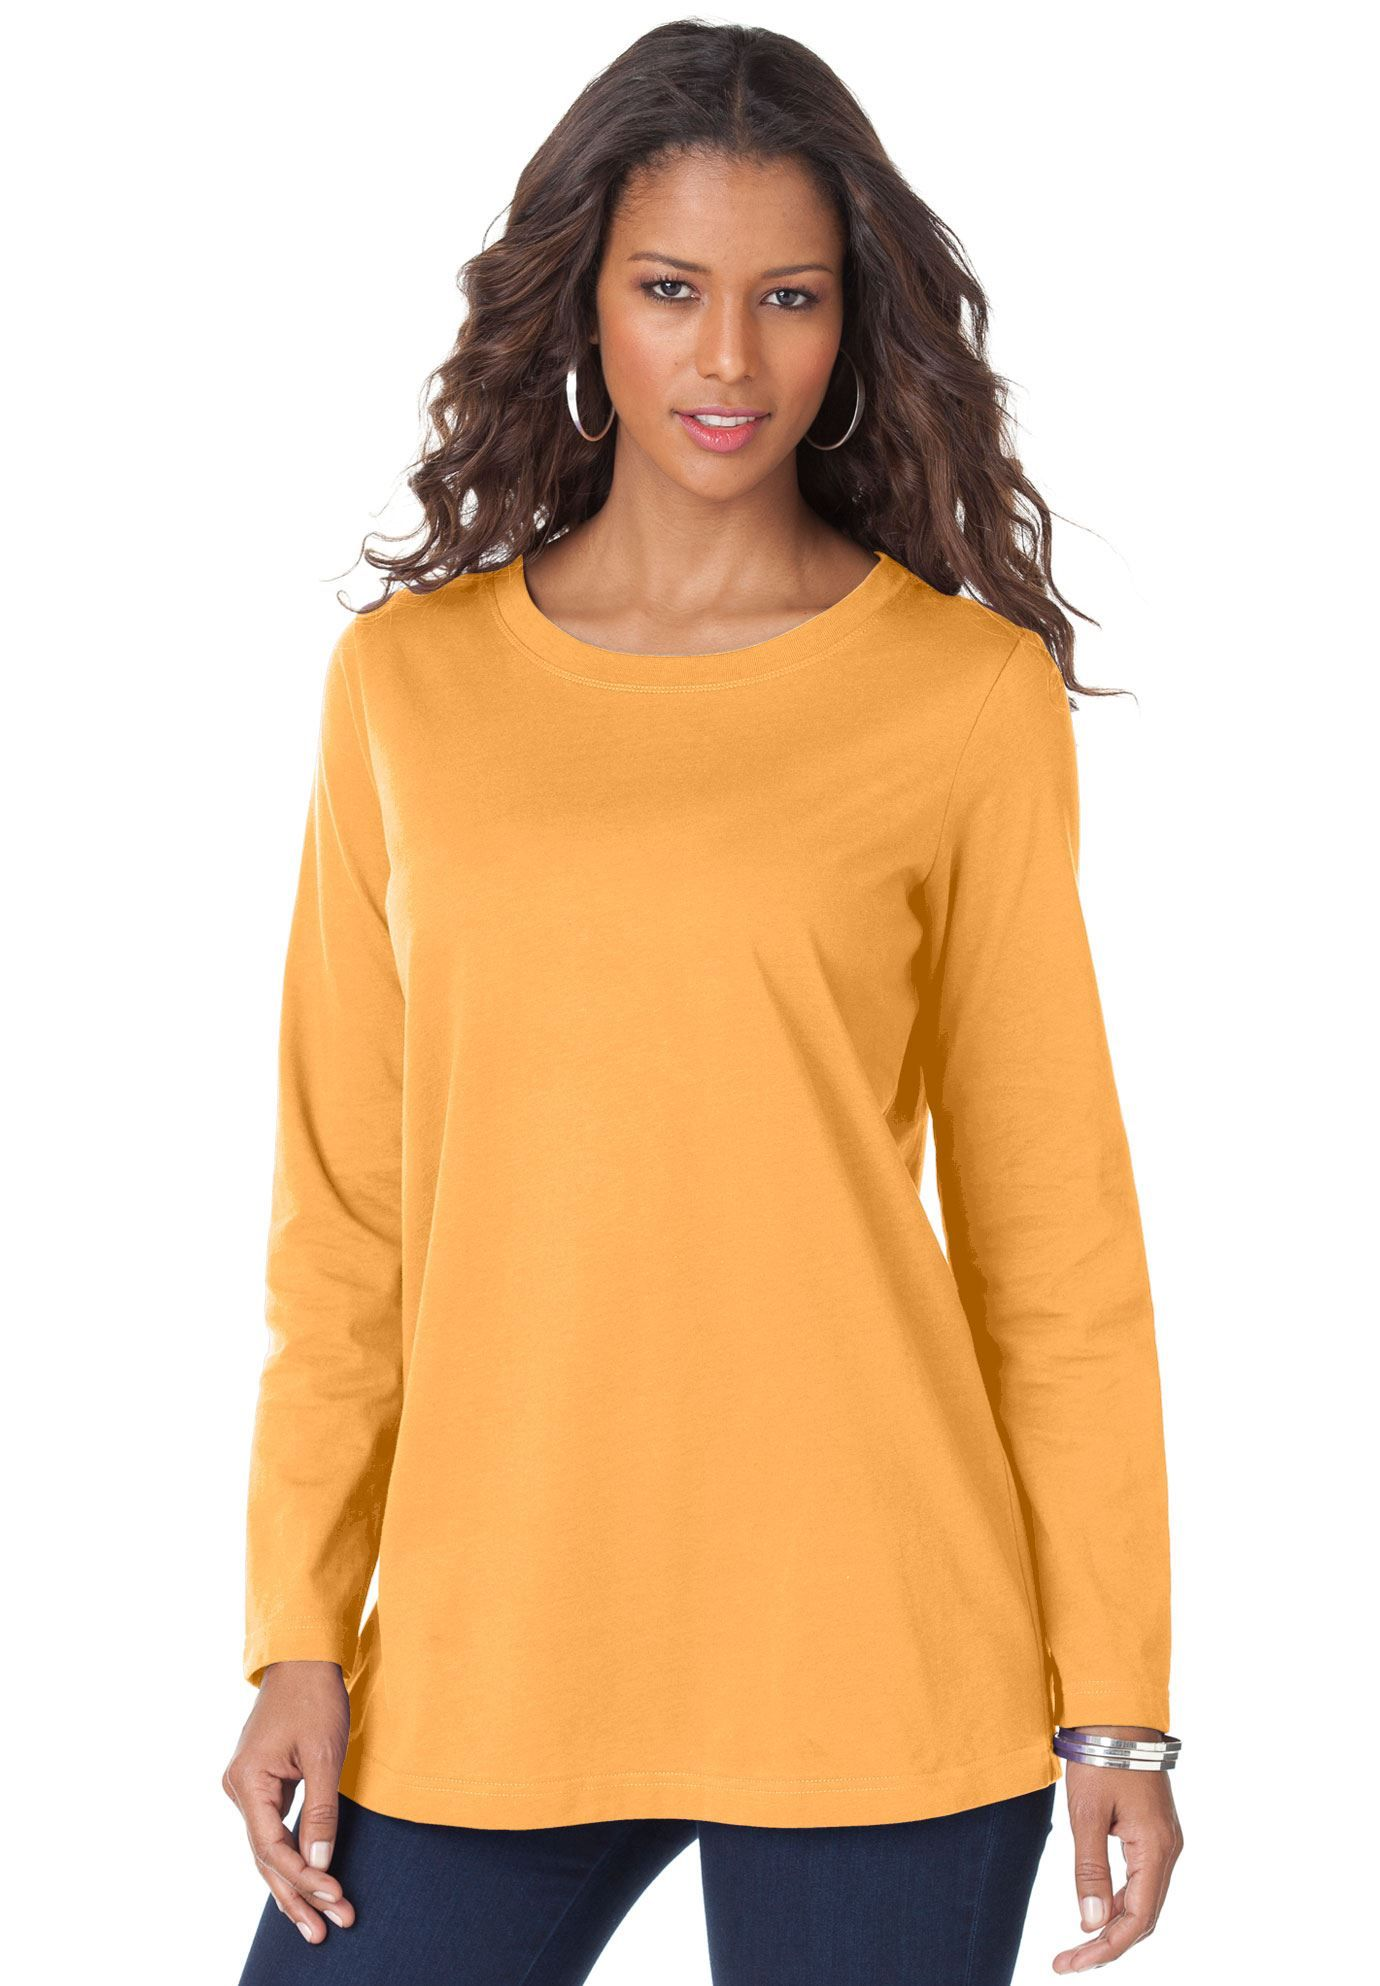 33a10e89d61 Shop for Crew Neck Long Sleeve Ultimate tee and more Plus Size Long Sleeve  from Roamans.